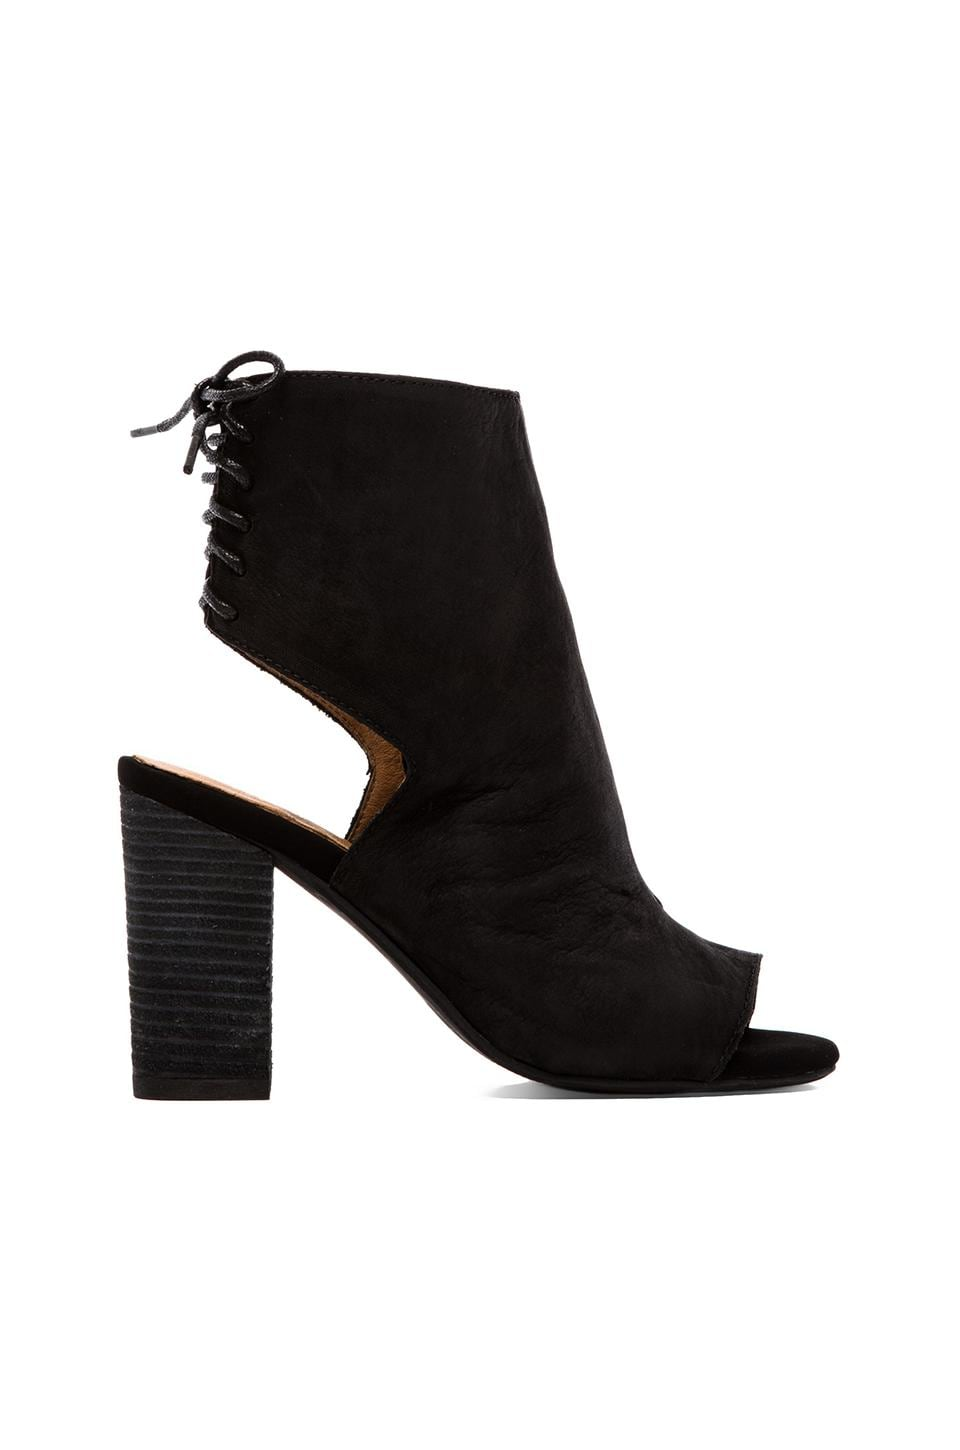 Jeffrey Campbell Quincy Open Toe Heeled Booty in Black Nubuck